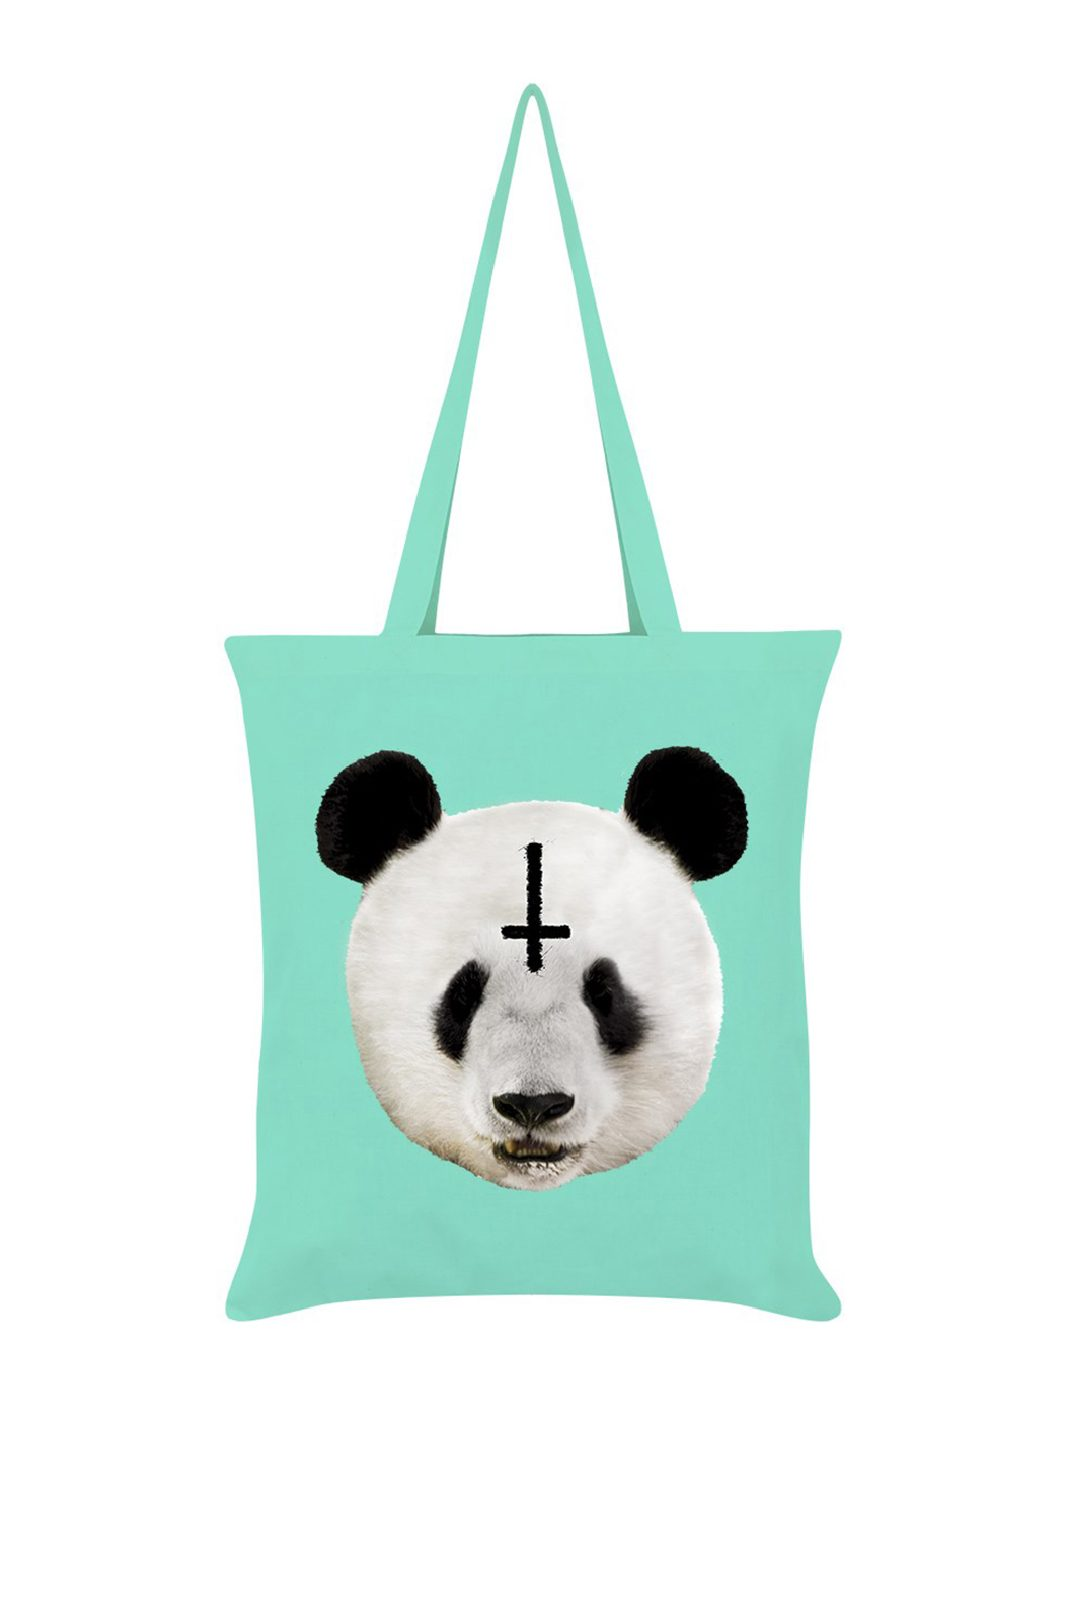 Unorthodox Panda Mint Green Tote Bag